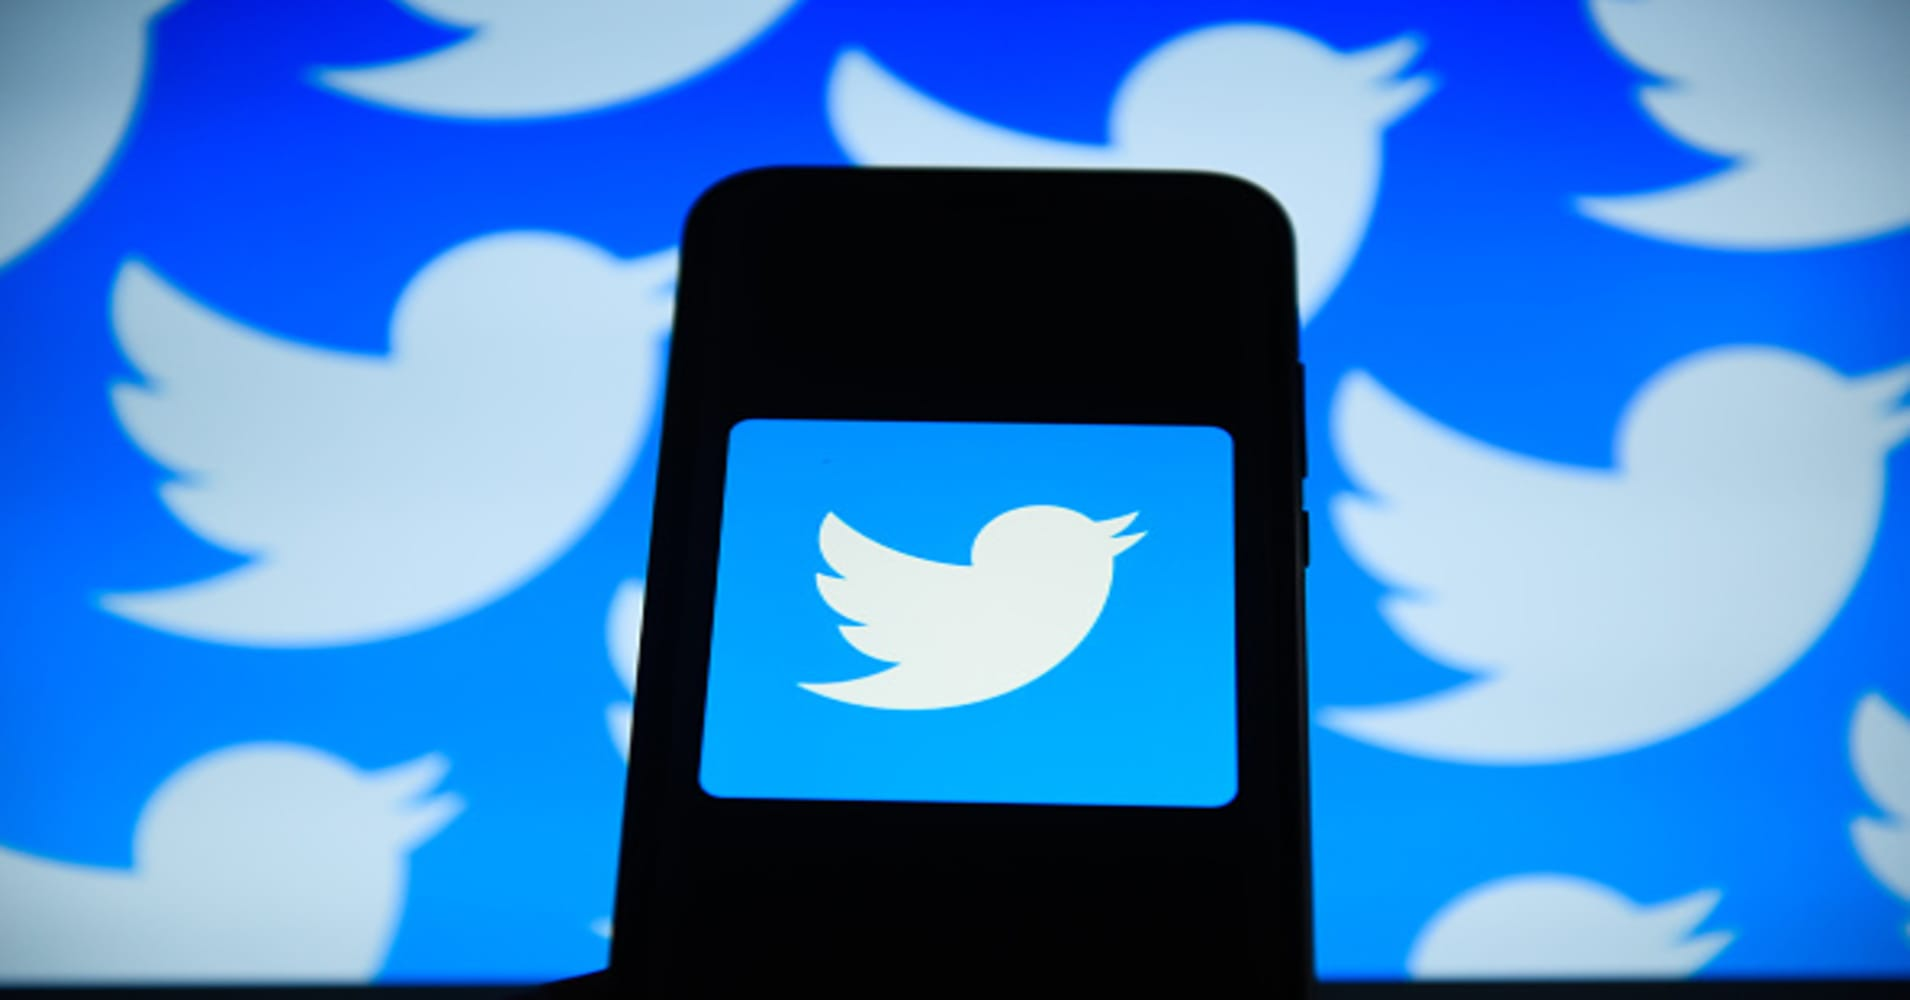 Twitter says it patched a bug that could have shared users' private messages